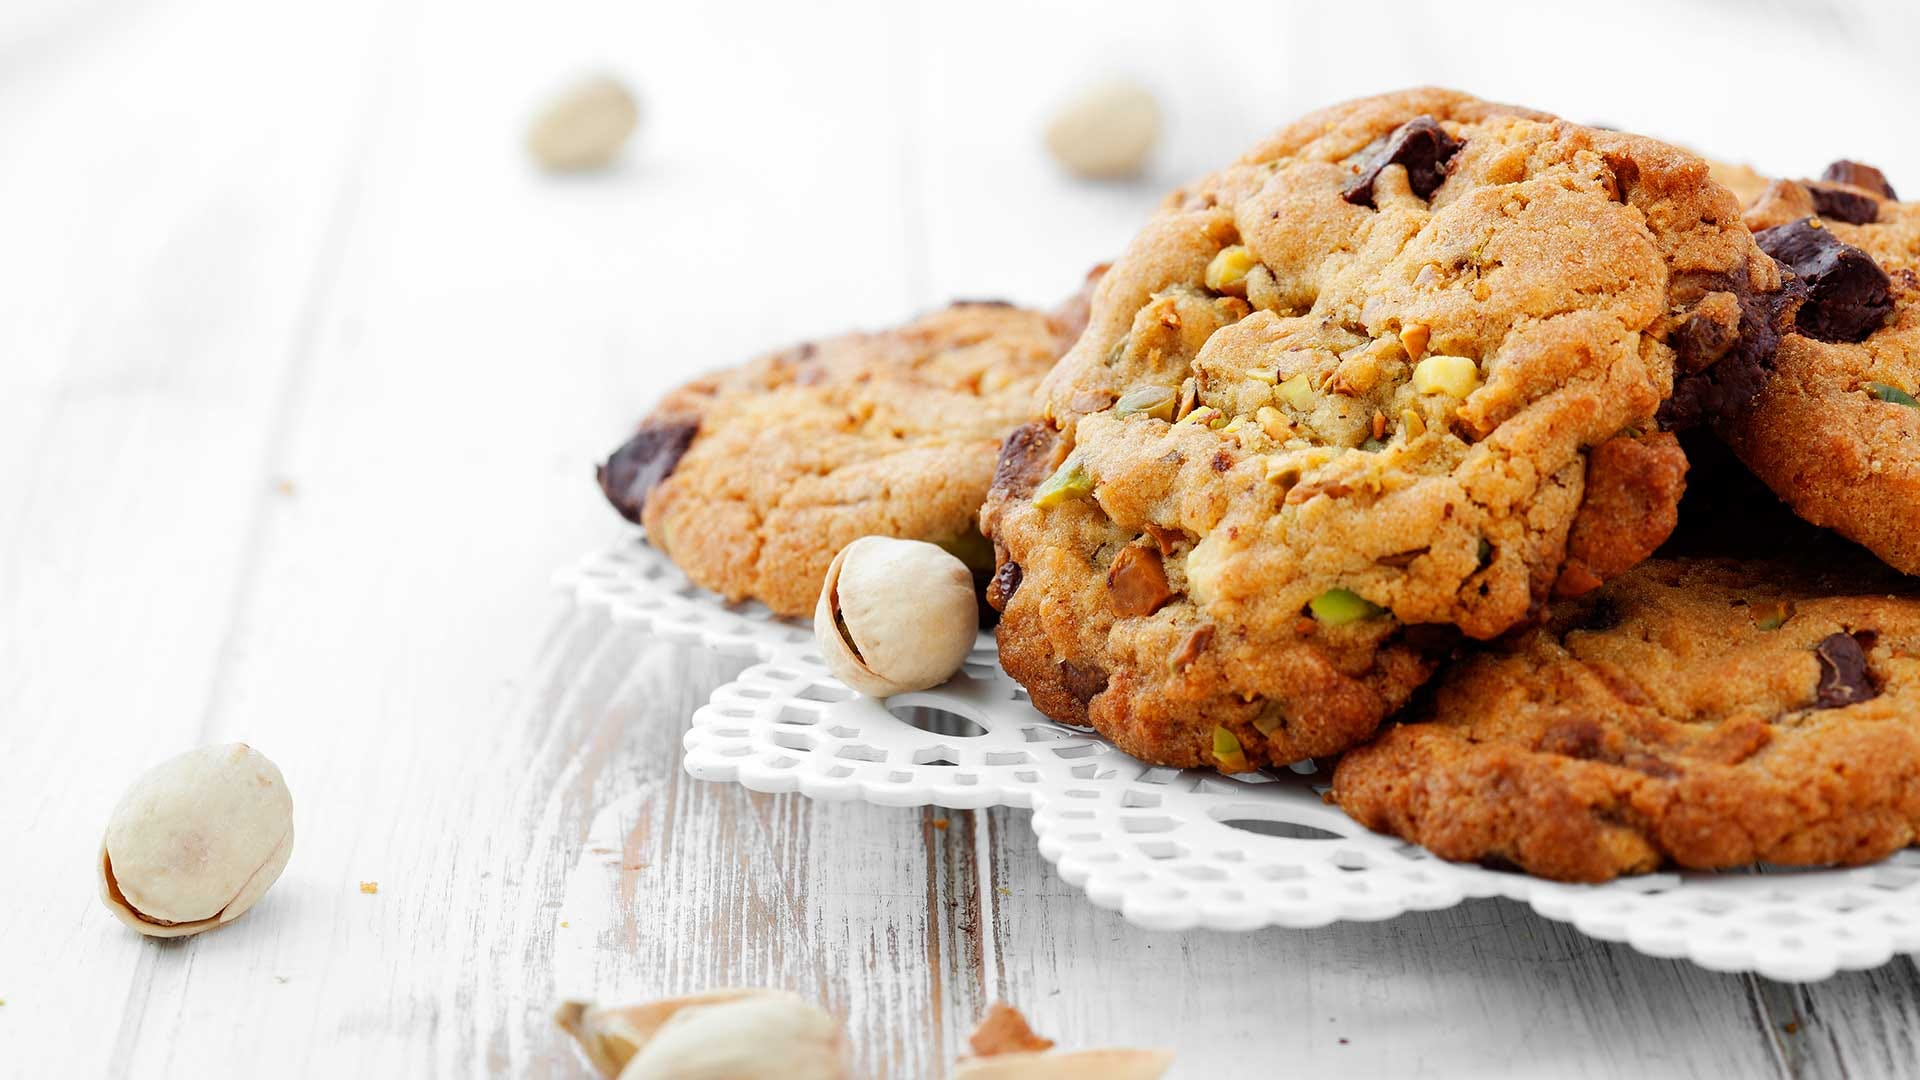 Homemade chocolate chip cookies with pistachios.